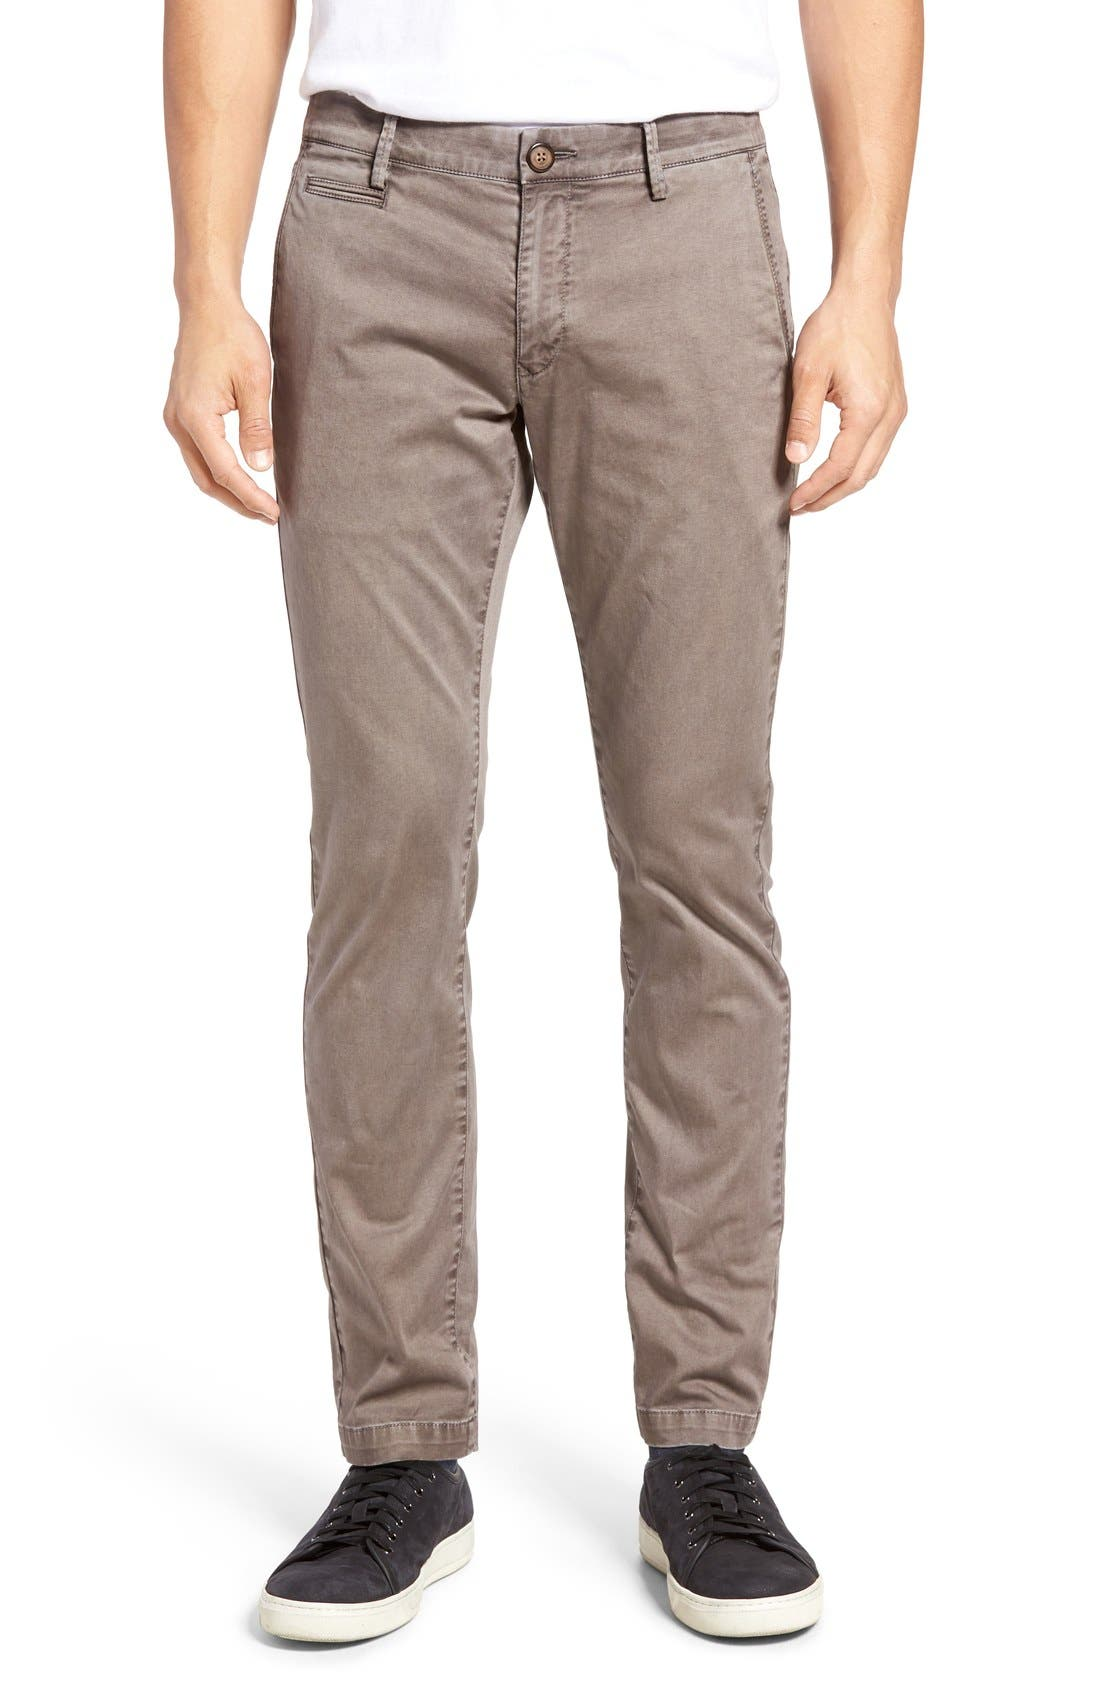 Enzyme Washed Chinos,                         Main,                         color, 020